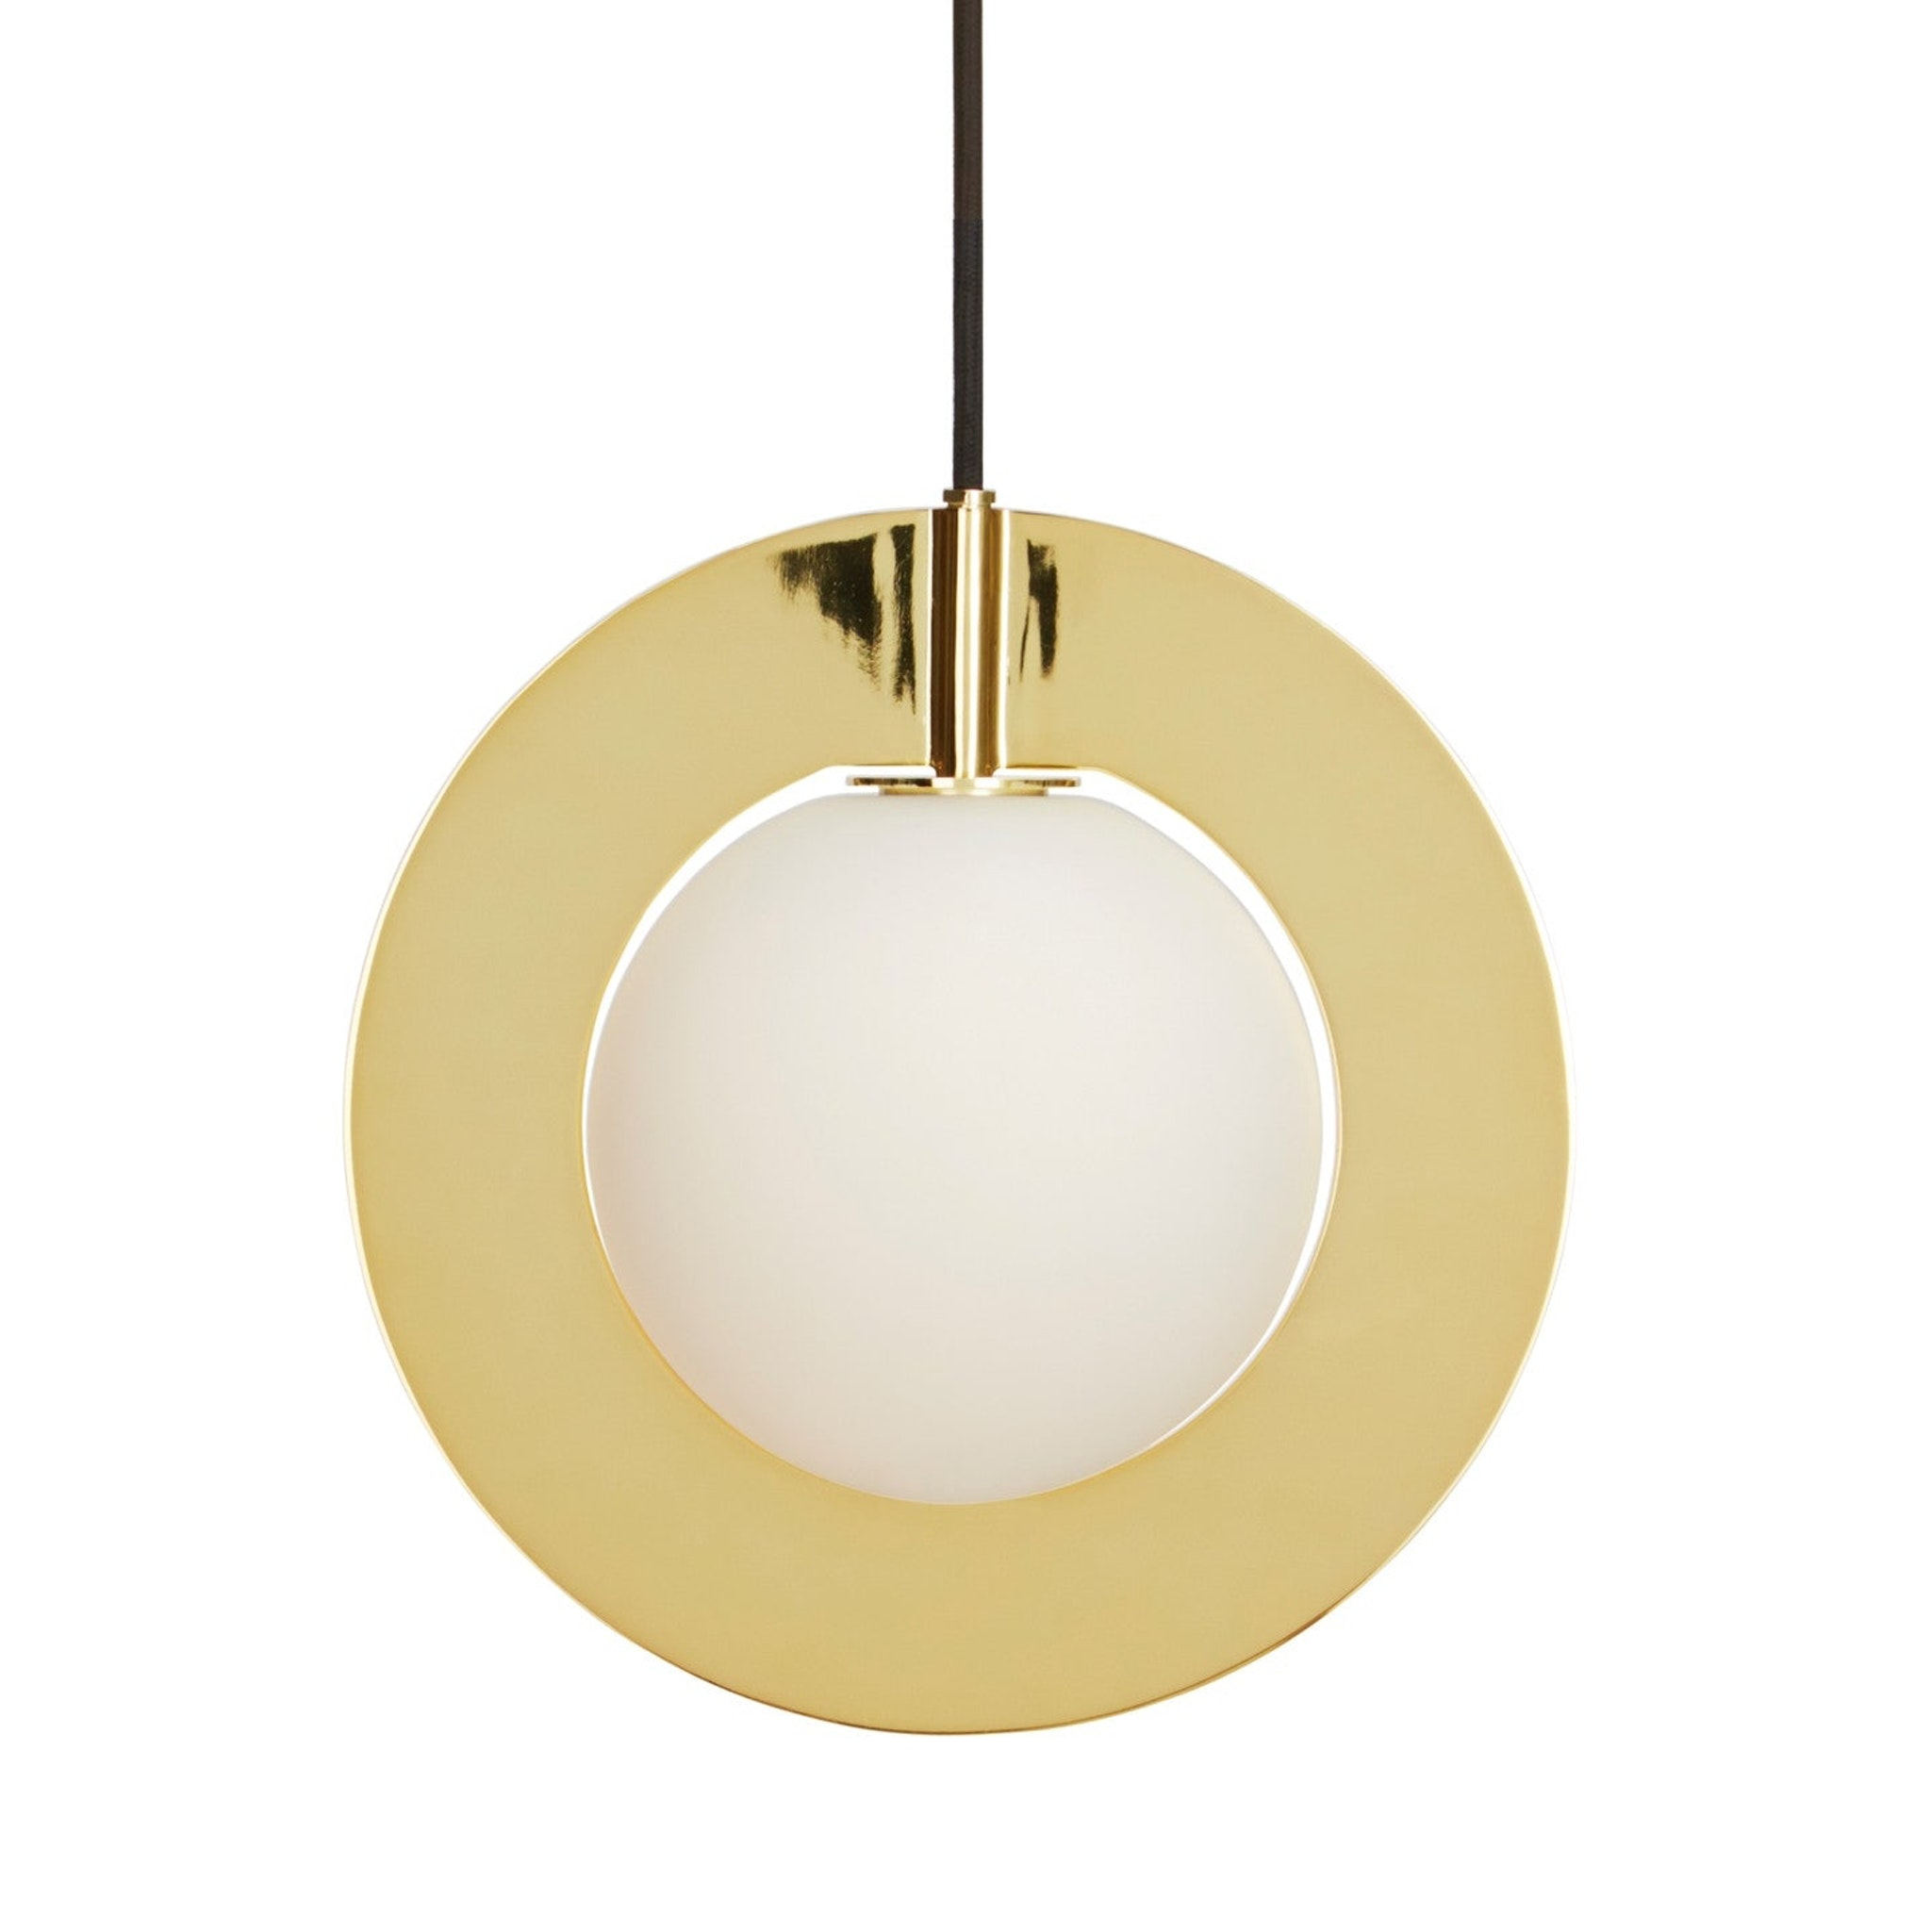 Plane Round Pendant by Tom Dixon